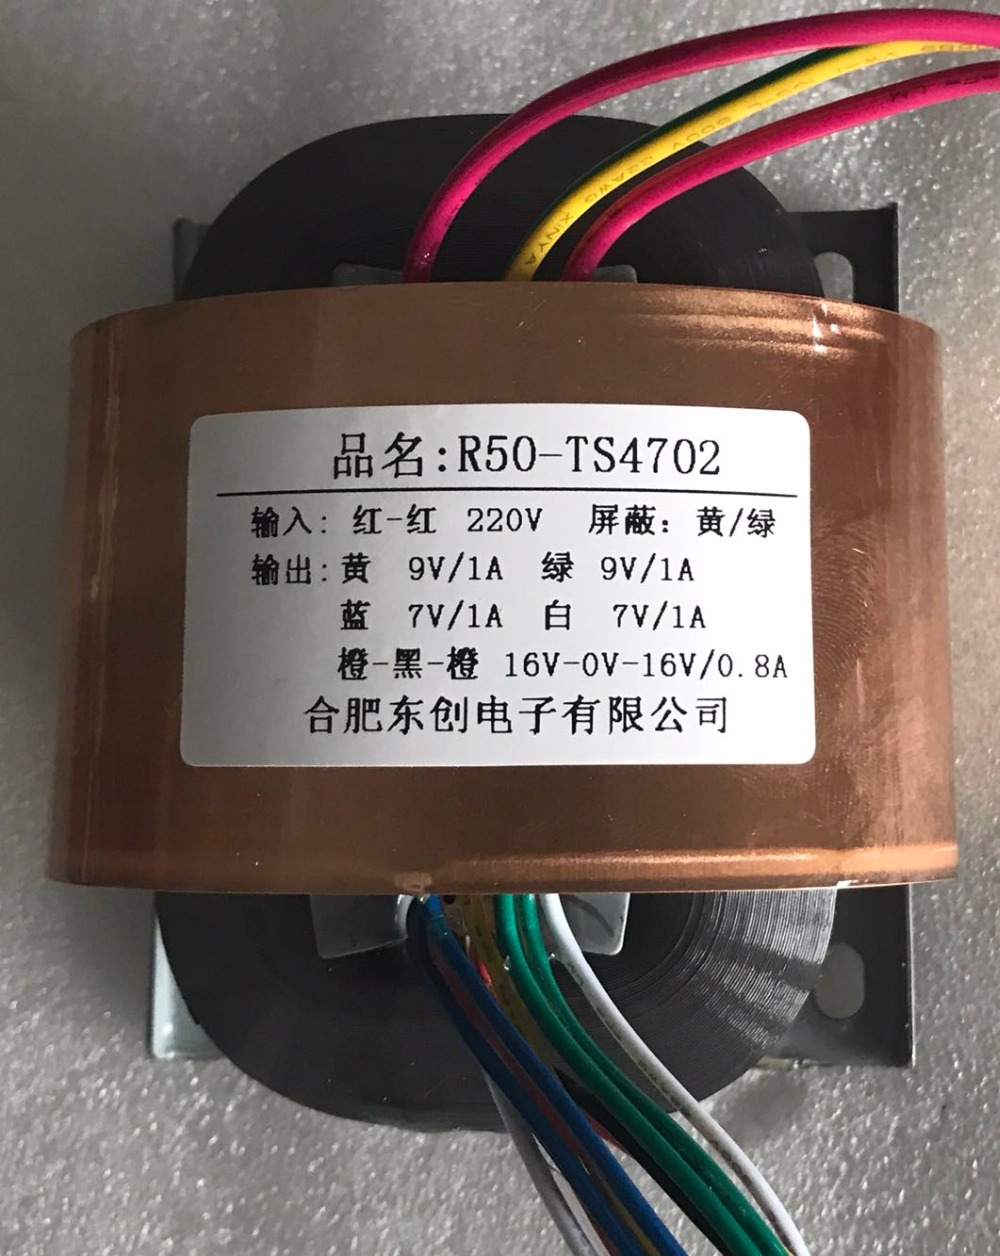 16V-0-16V 0.8A 2*9V 1A 2*7V 1A R Core Transformer 60VA R50 custom transformer 220V copper shield output for Power amplifier 16v 0 16v 1a 2 9v 1a r core transformer 50va r40 custom transformer 110v 110v copper shield output for power supply amplifier